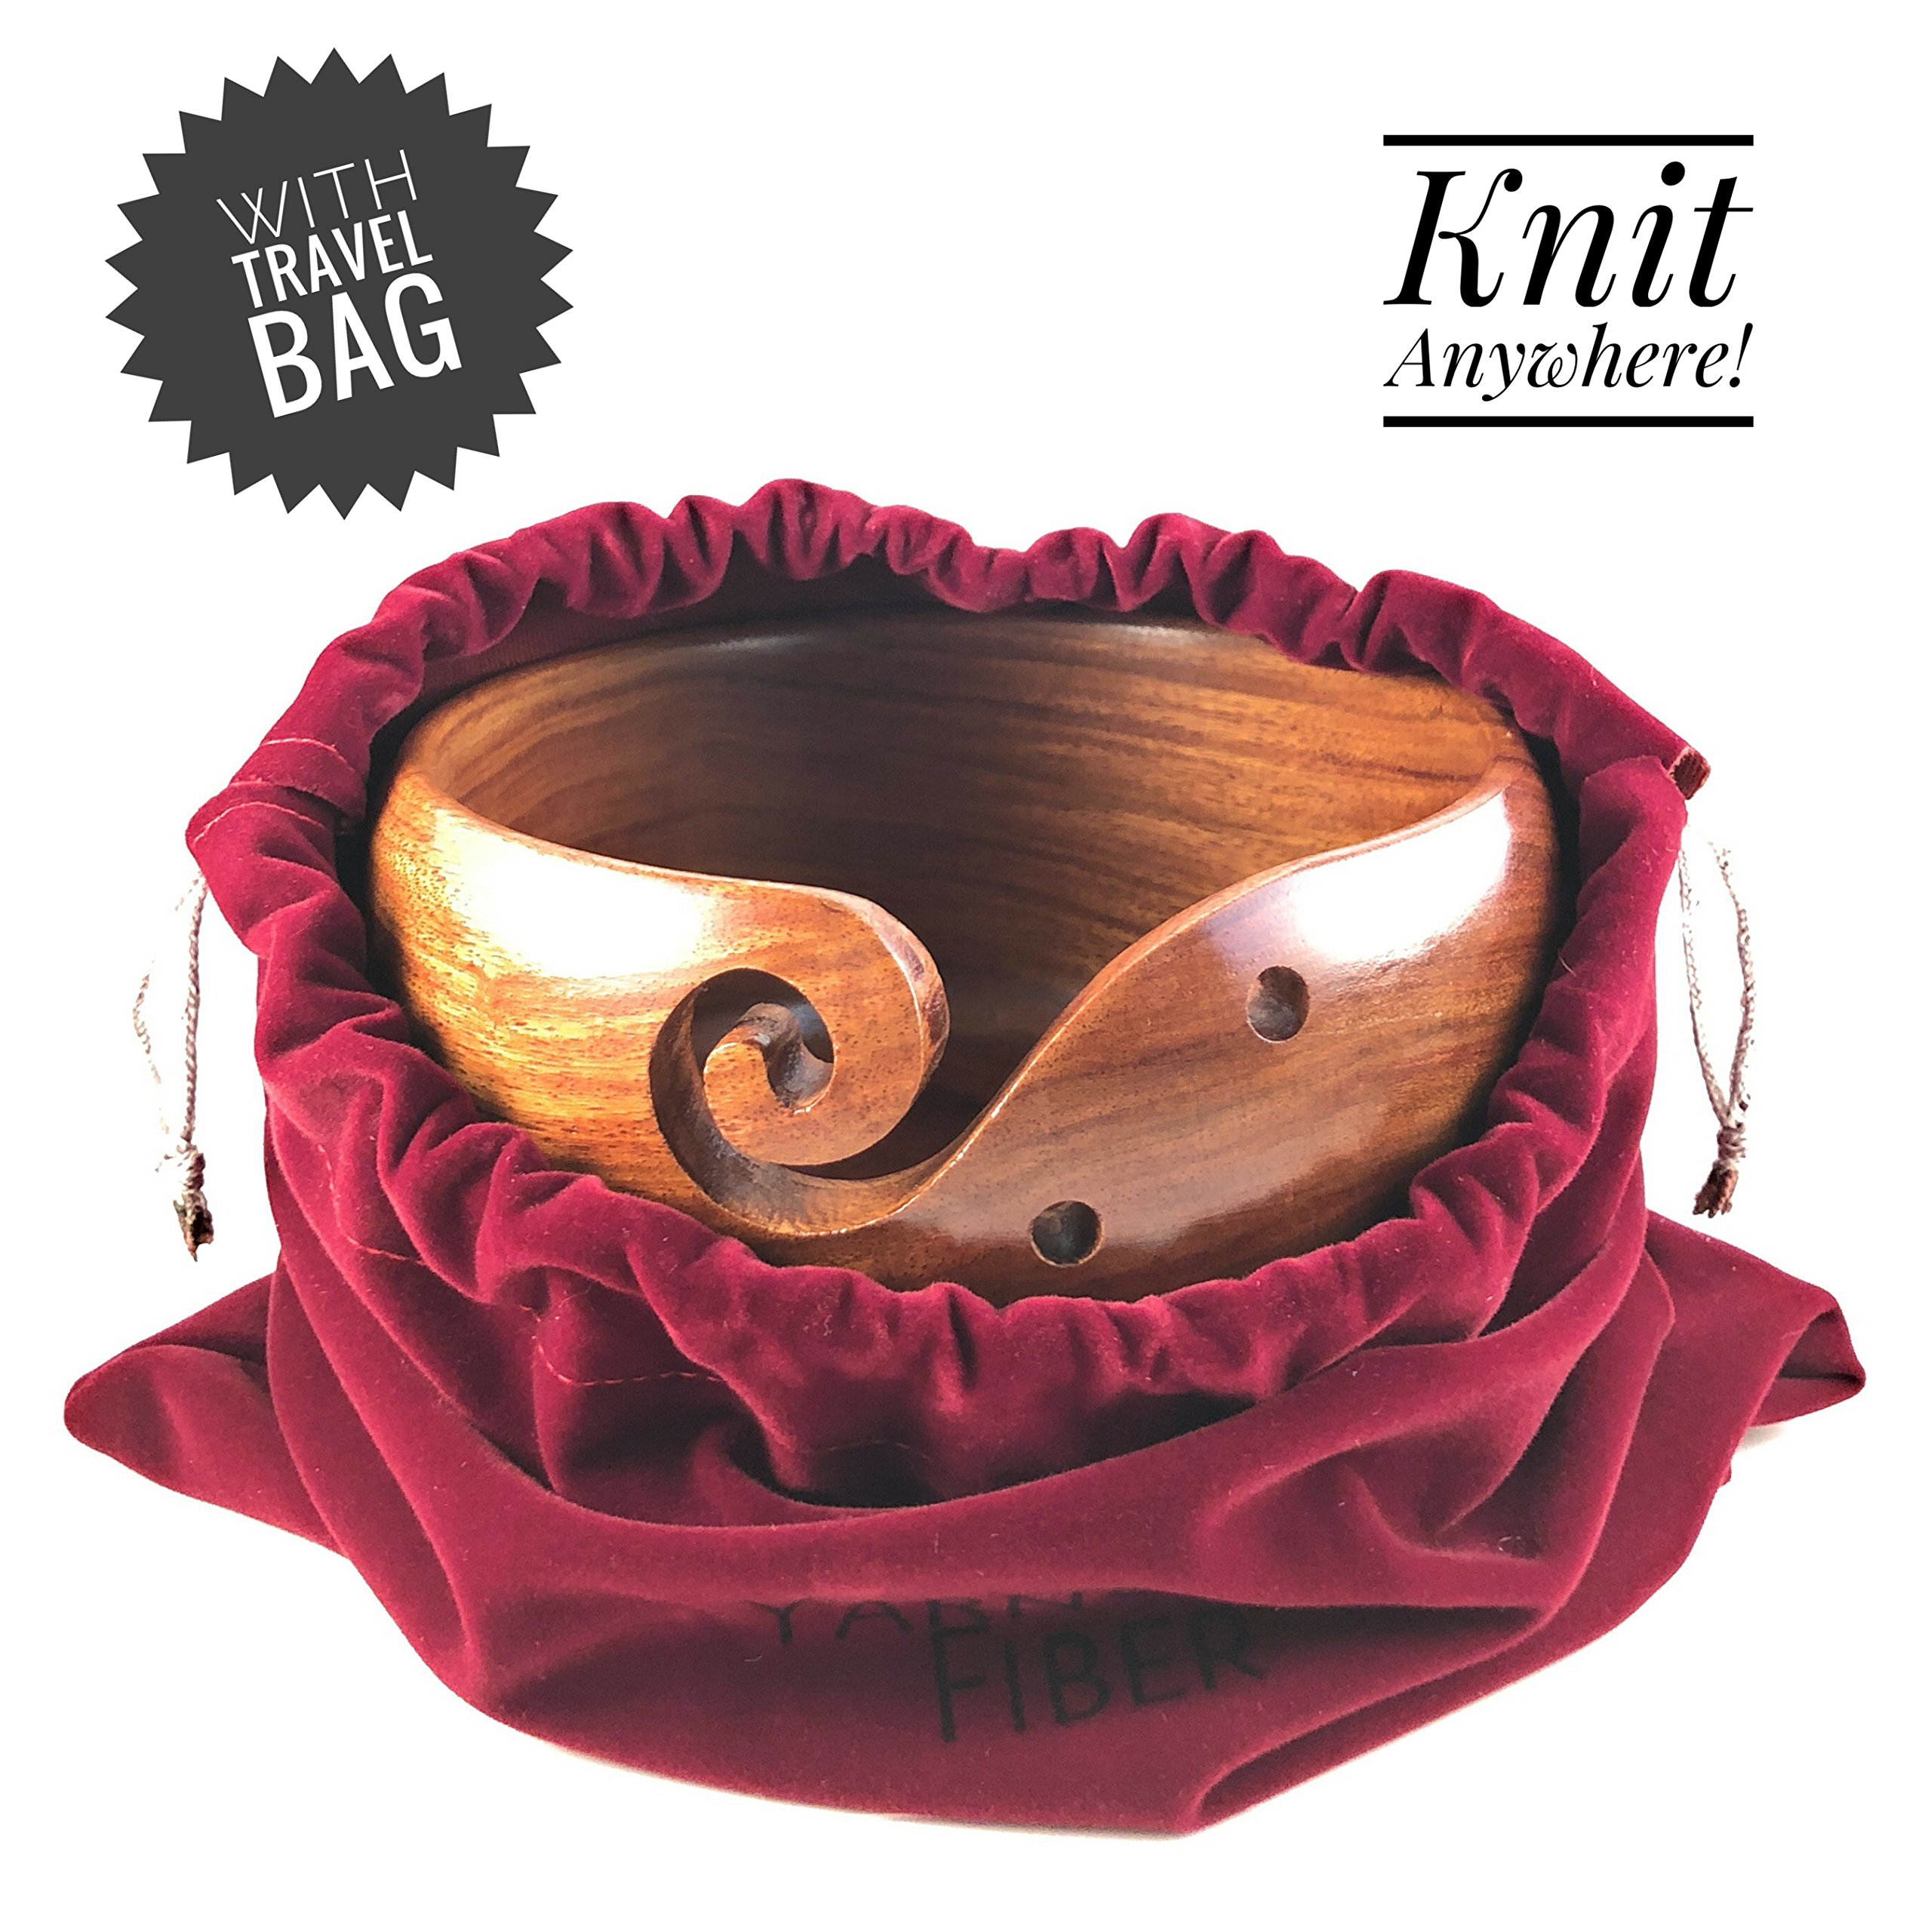 Yarn & Fiber Premium Yarn Bowl | Large 7x4 Inch with Travel Bag | Smooth Handcrafted Rosewood, Stop Yarn From Rolling, Knitting and Crochet Yarn Holder by Yarn & Fiber (Image #4)